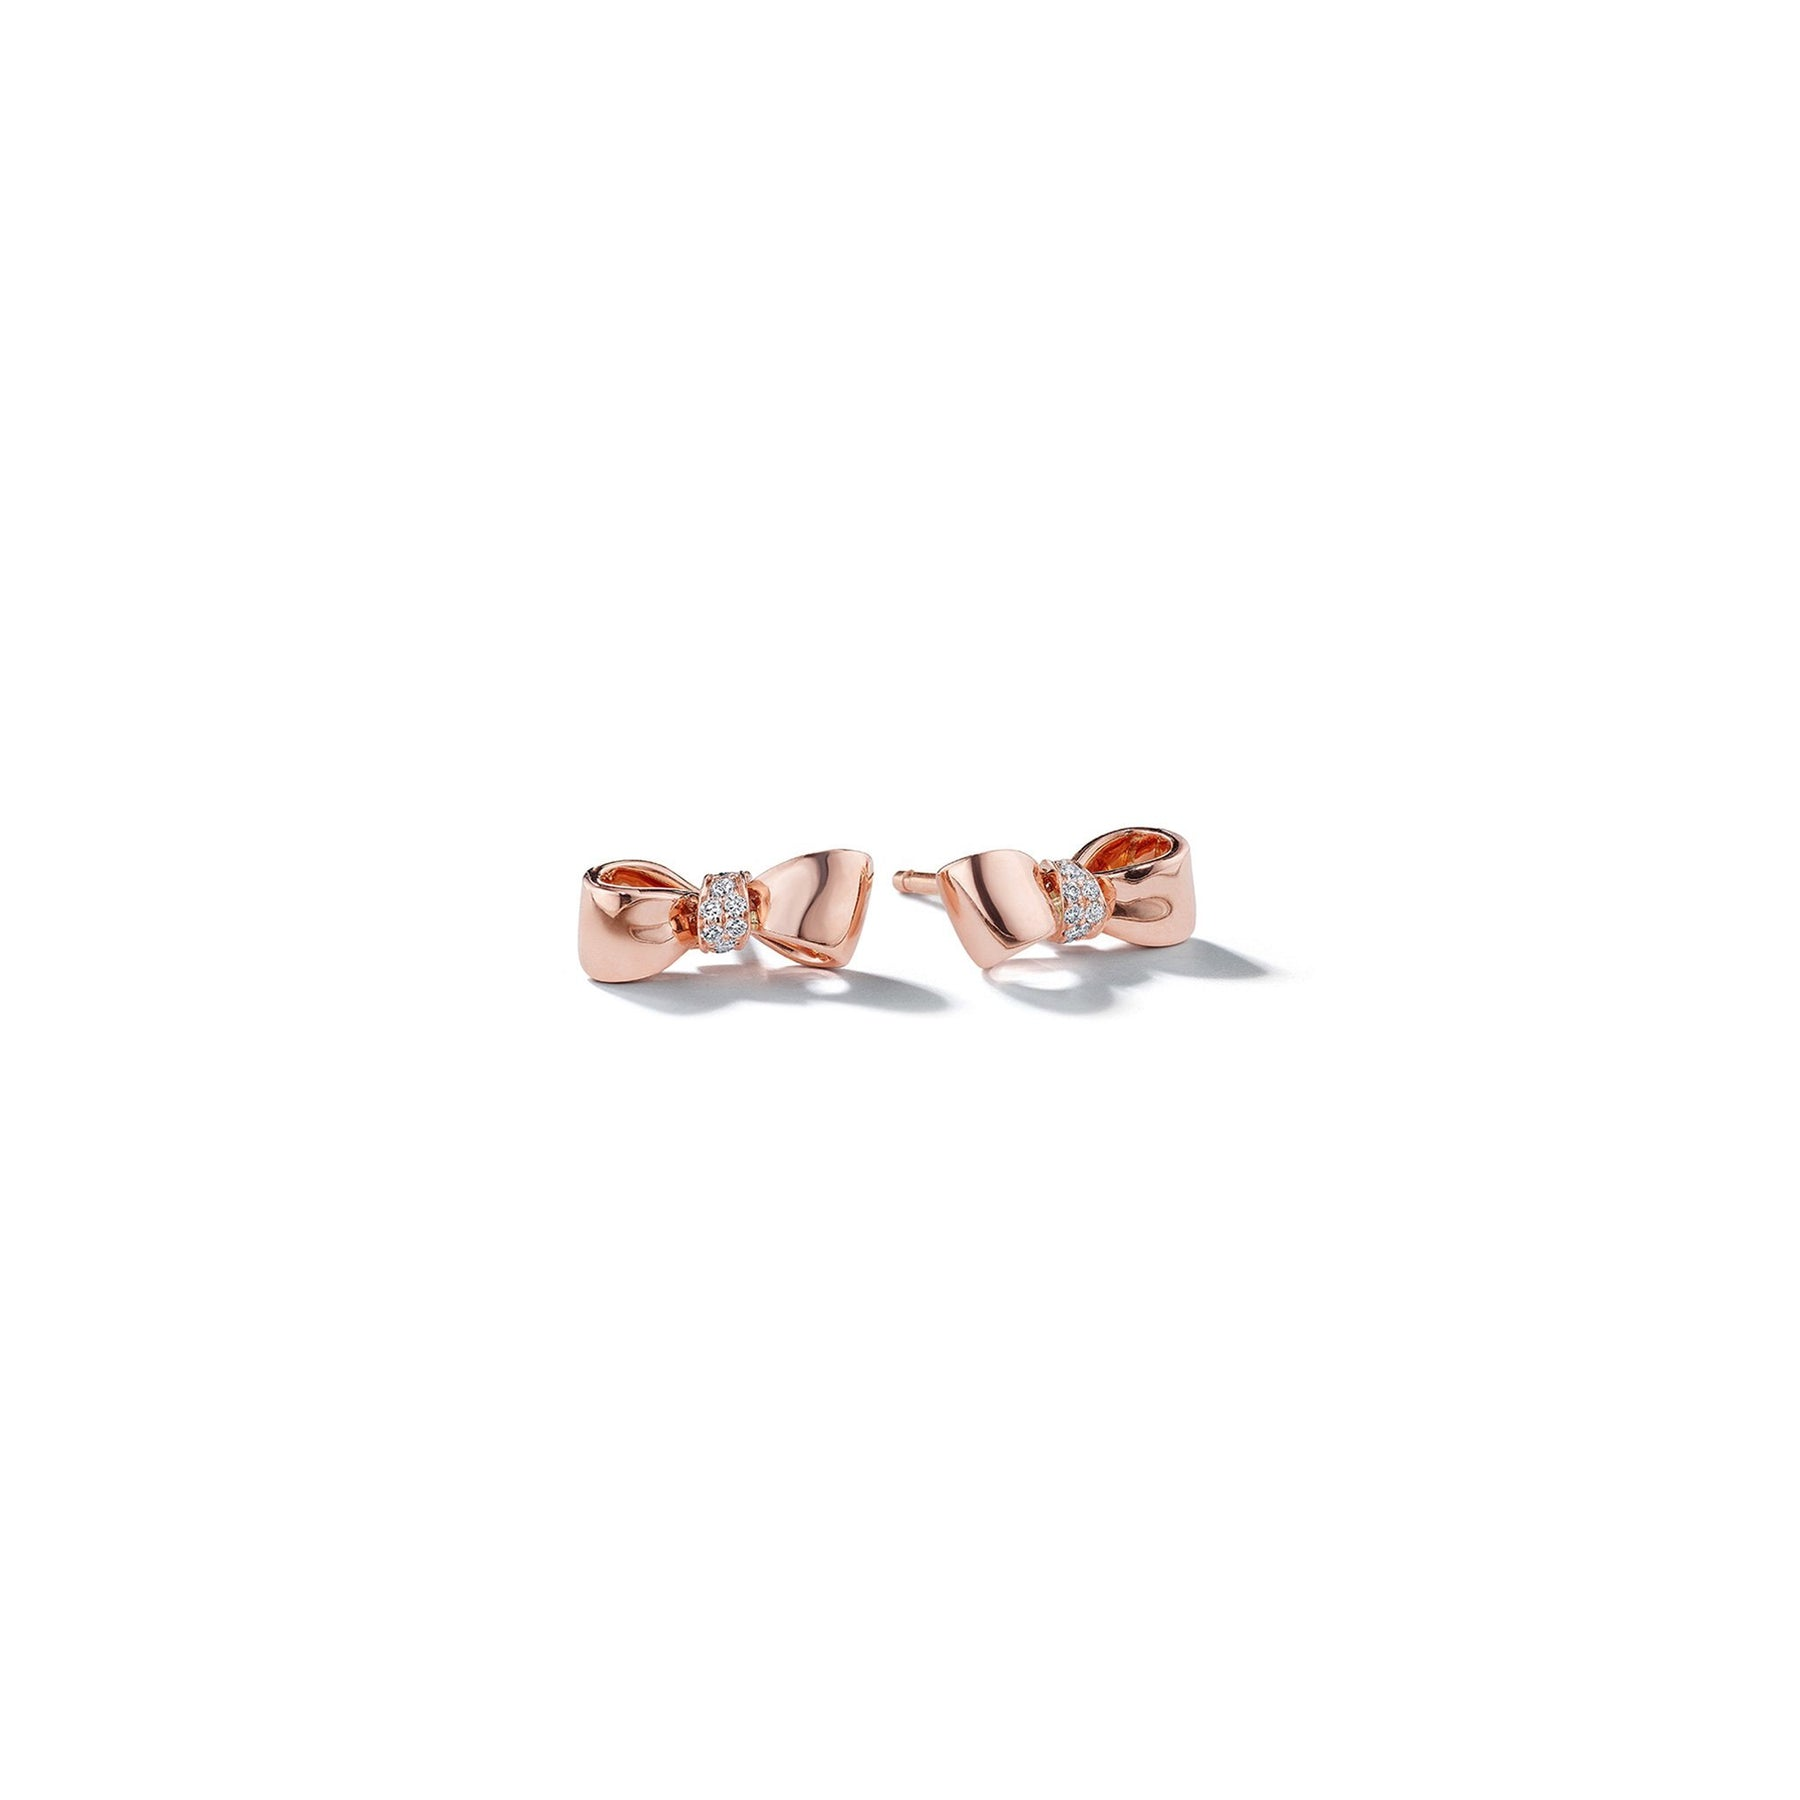 Mimi-So-Bow-Diamond-Knot-Baby-Stud-Earrings_14k Rose Gold